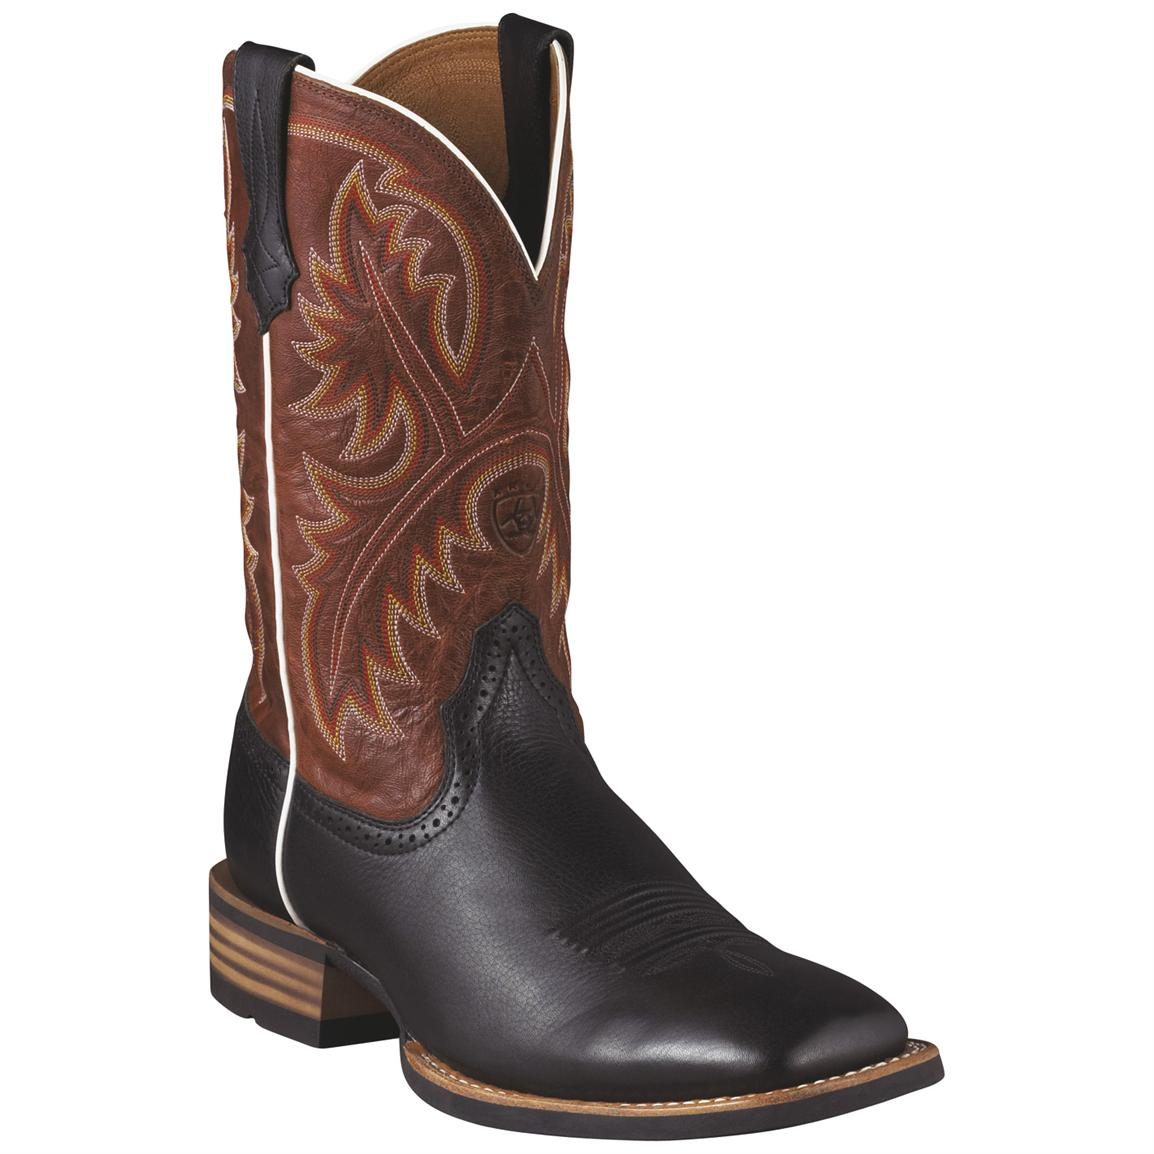 Men's Ariat® 11 inch Quickdraw Western Boots, Black Deer Tan